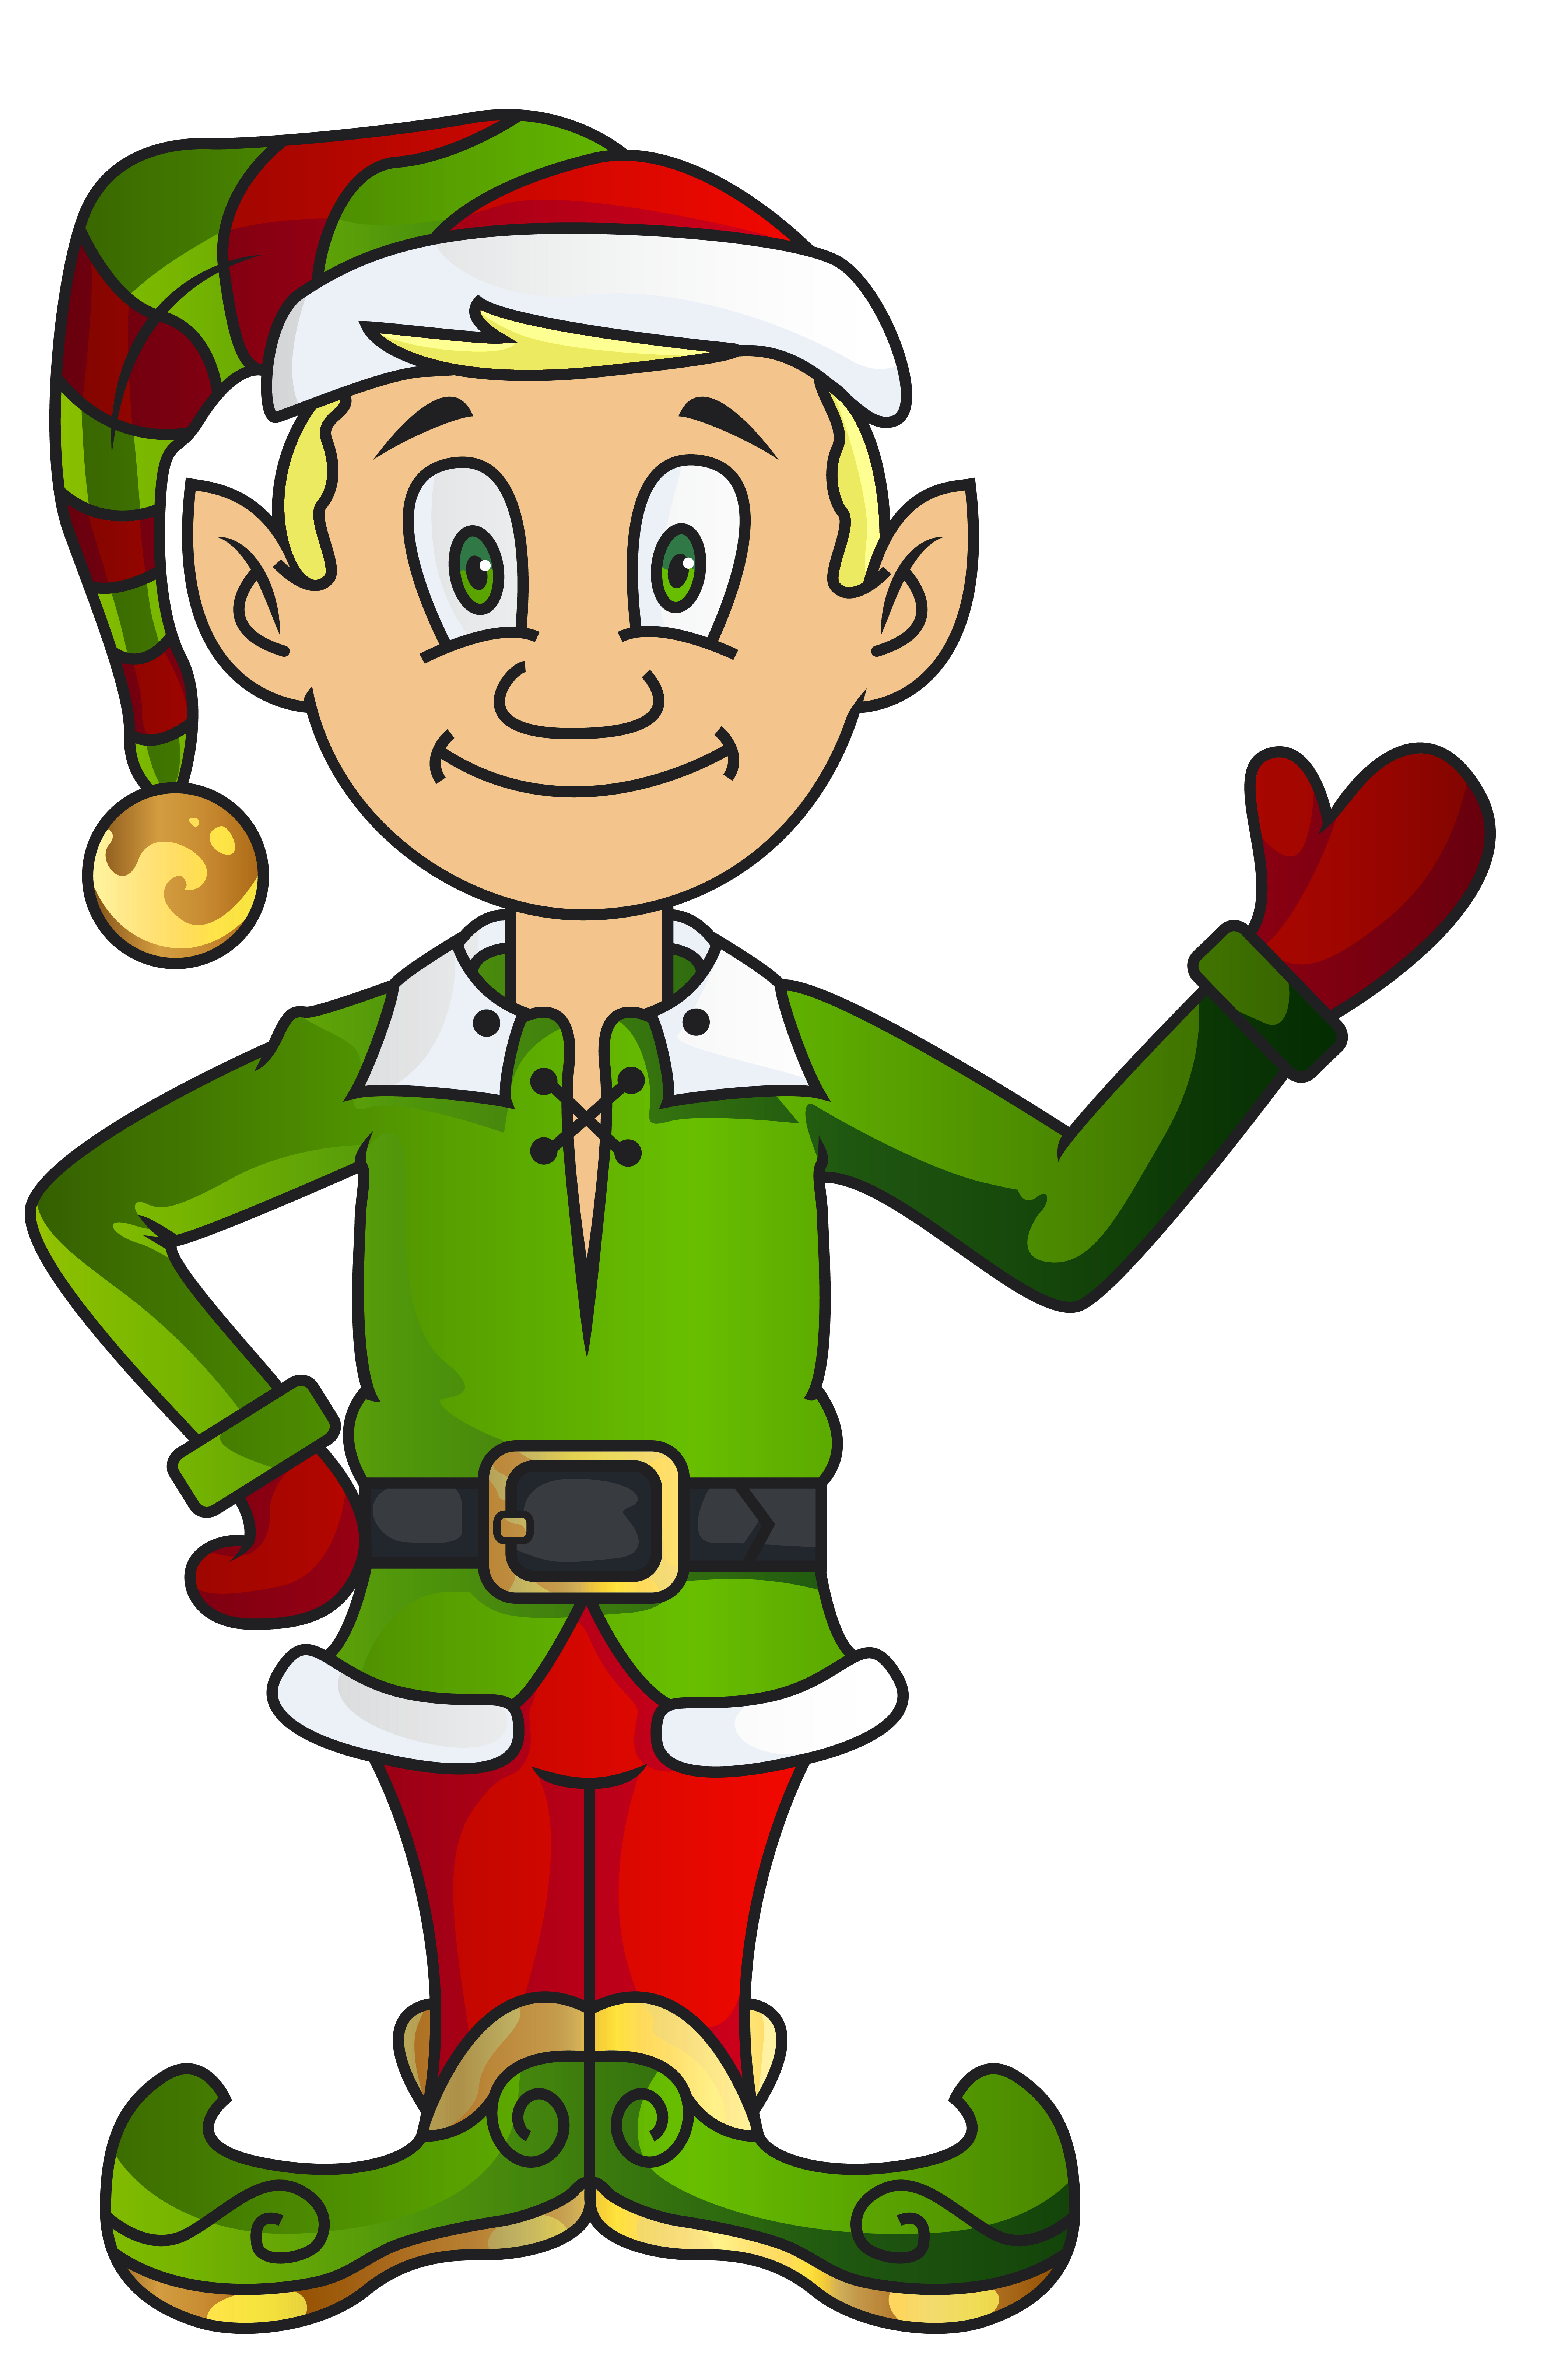 christmas elf clipart png - Clipground (4257 x 6437 Pixel)